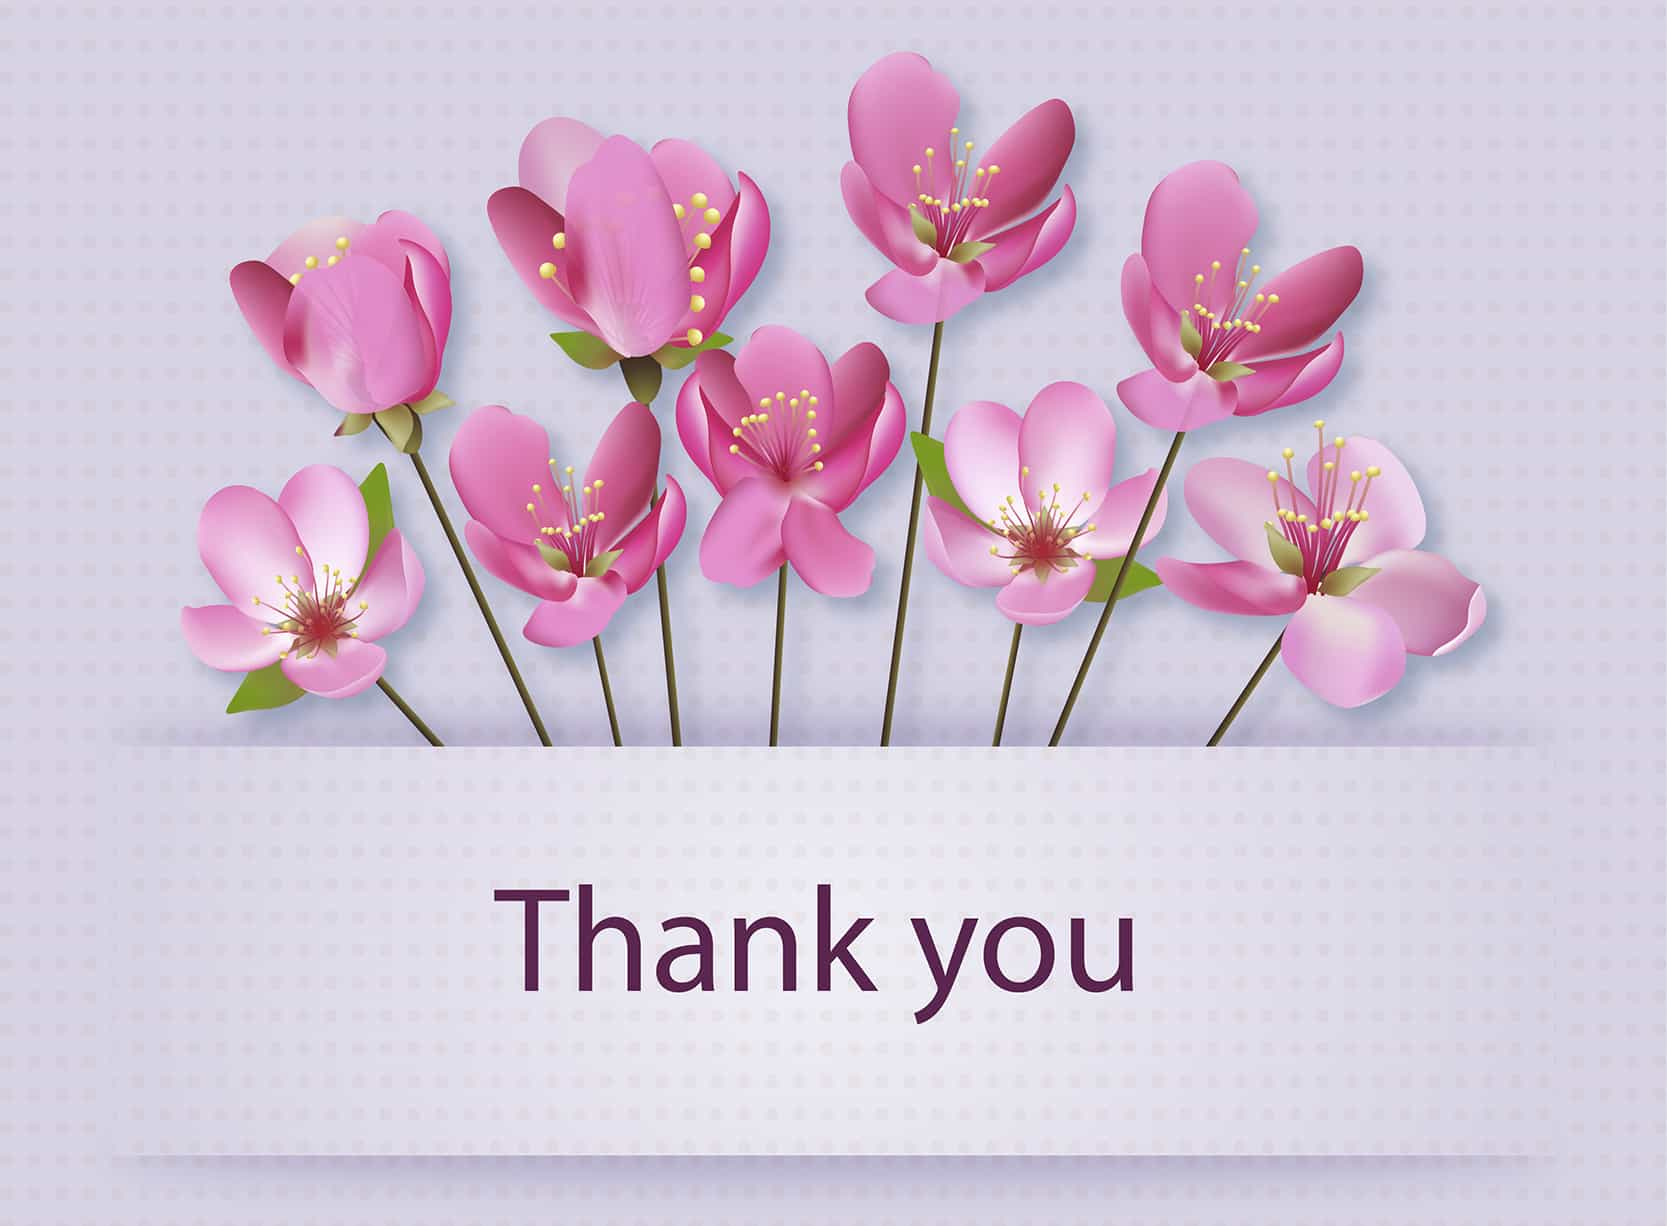 Thank you, with flowers